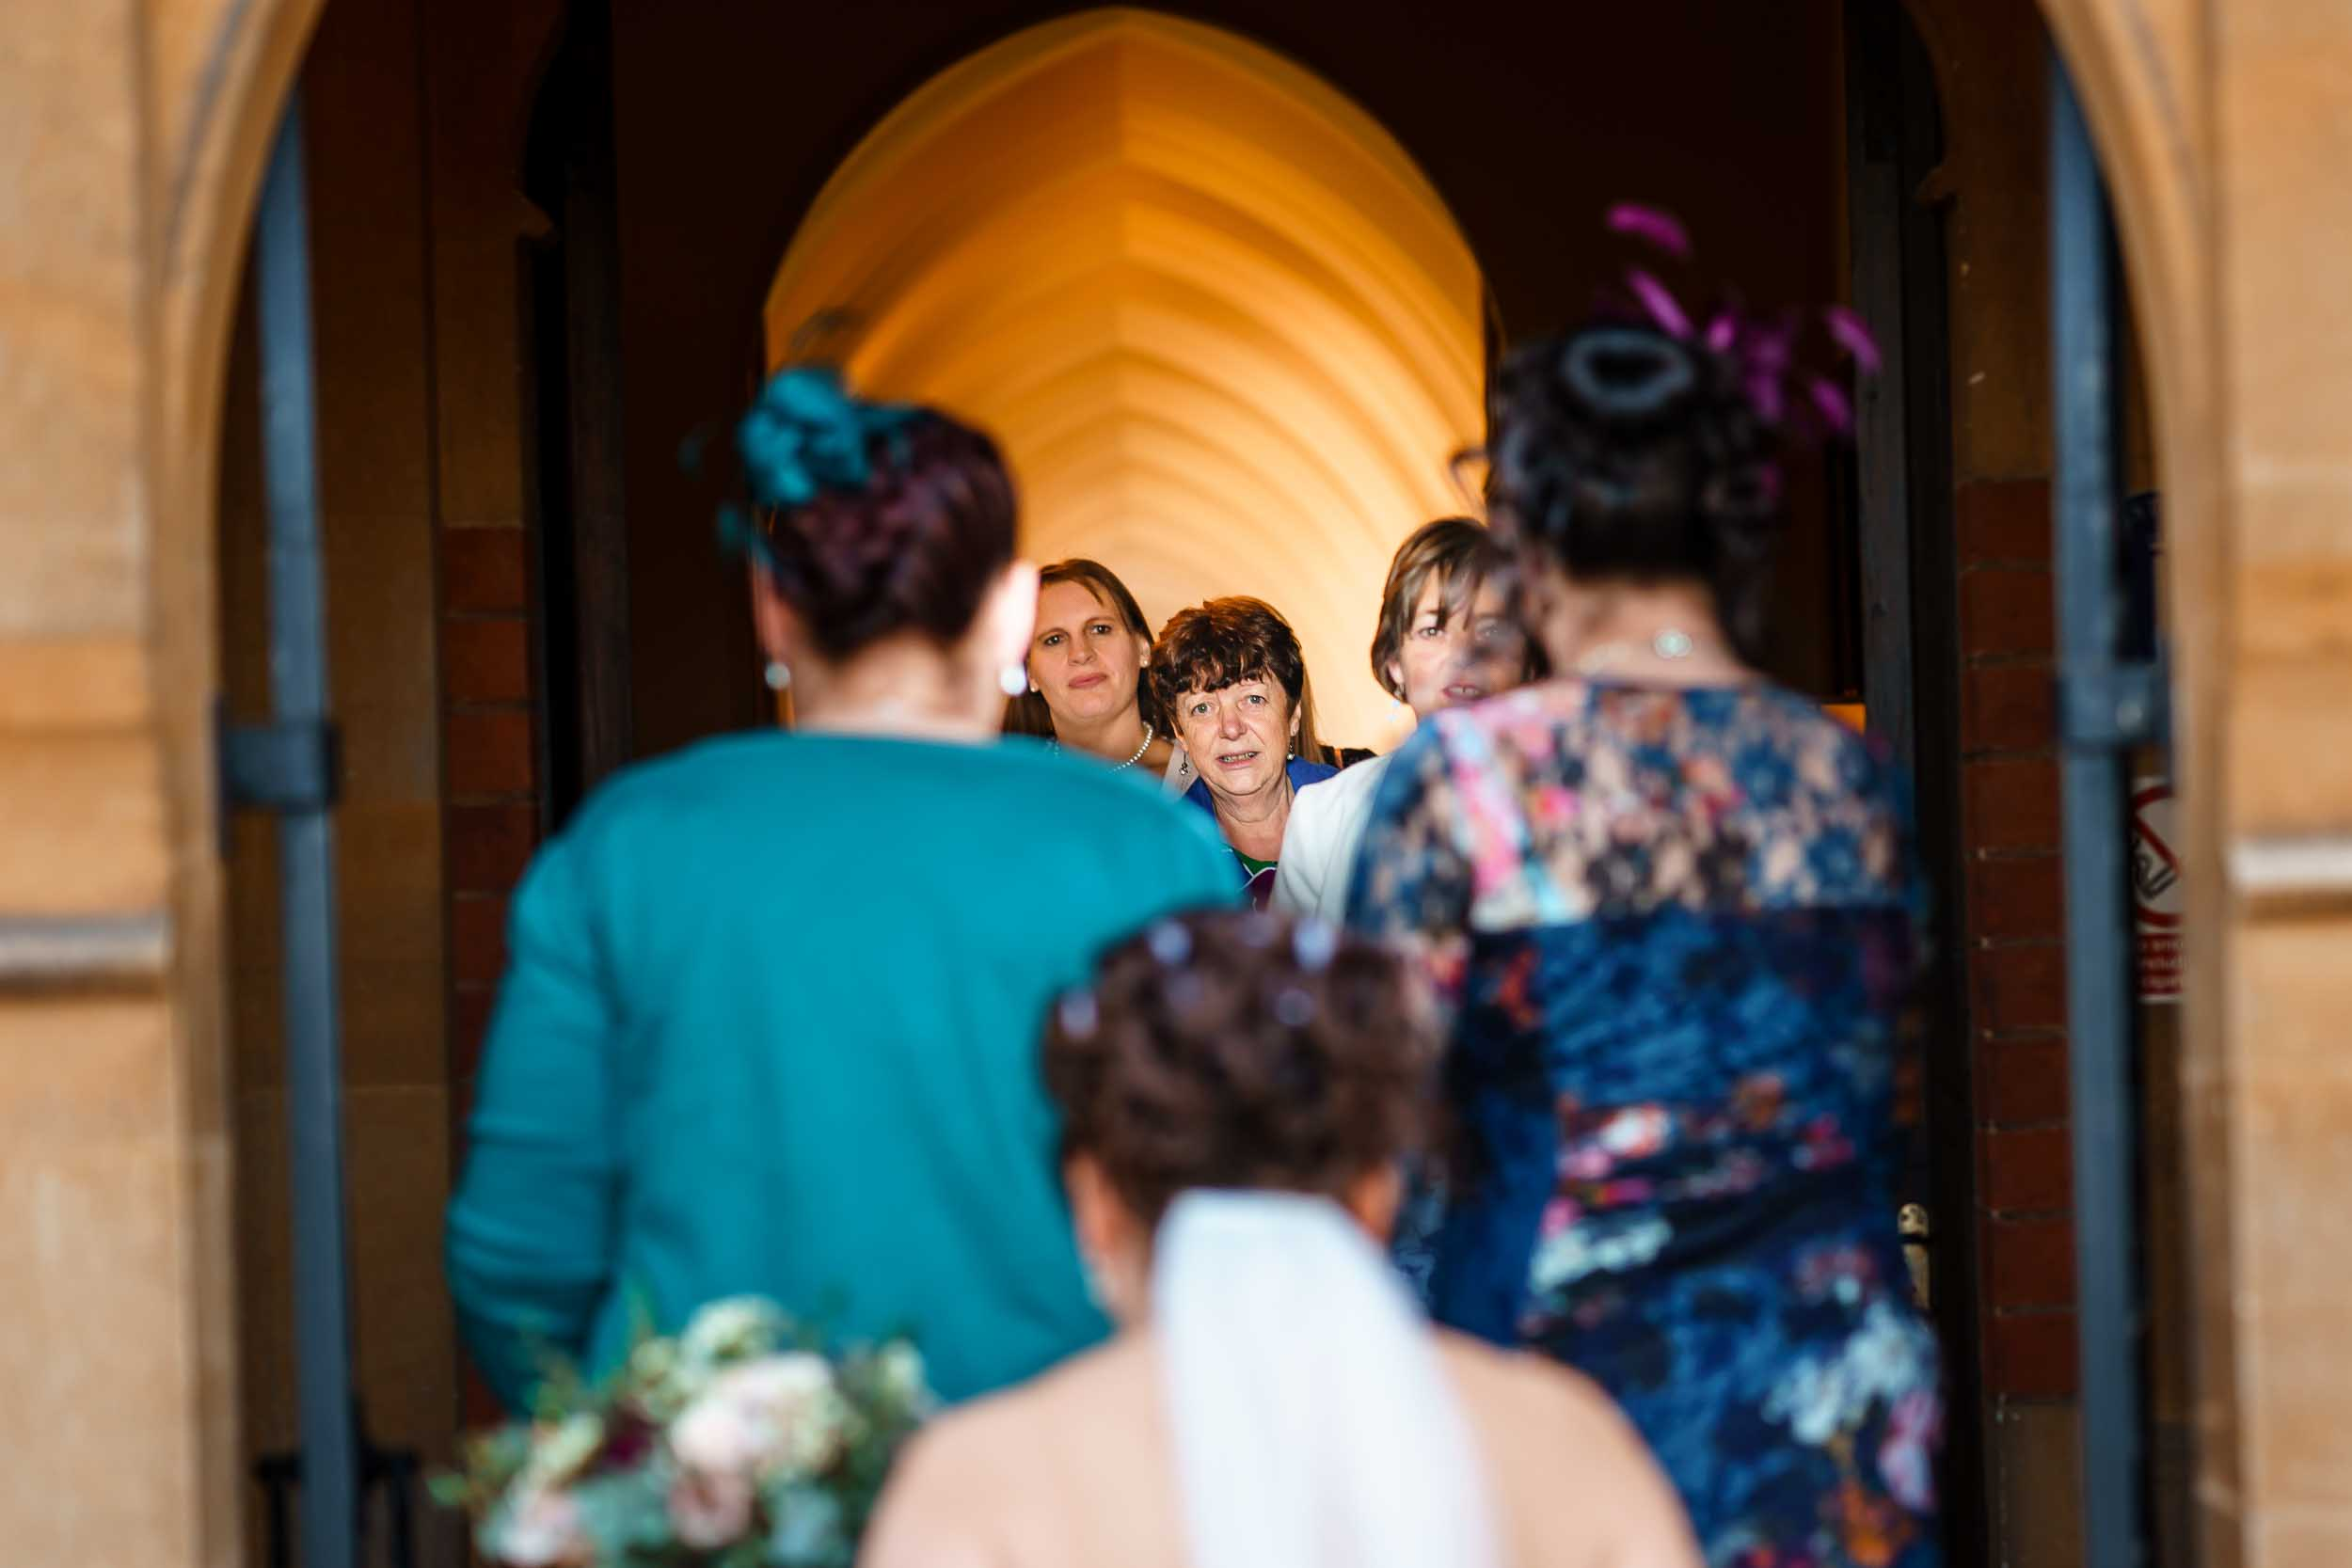 Stanbrook Abbey Wedding Photography- David Liebst Photography, Worcestershire